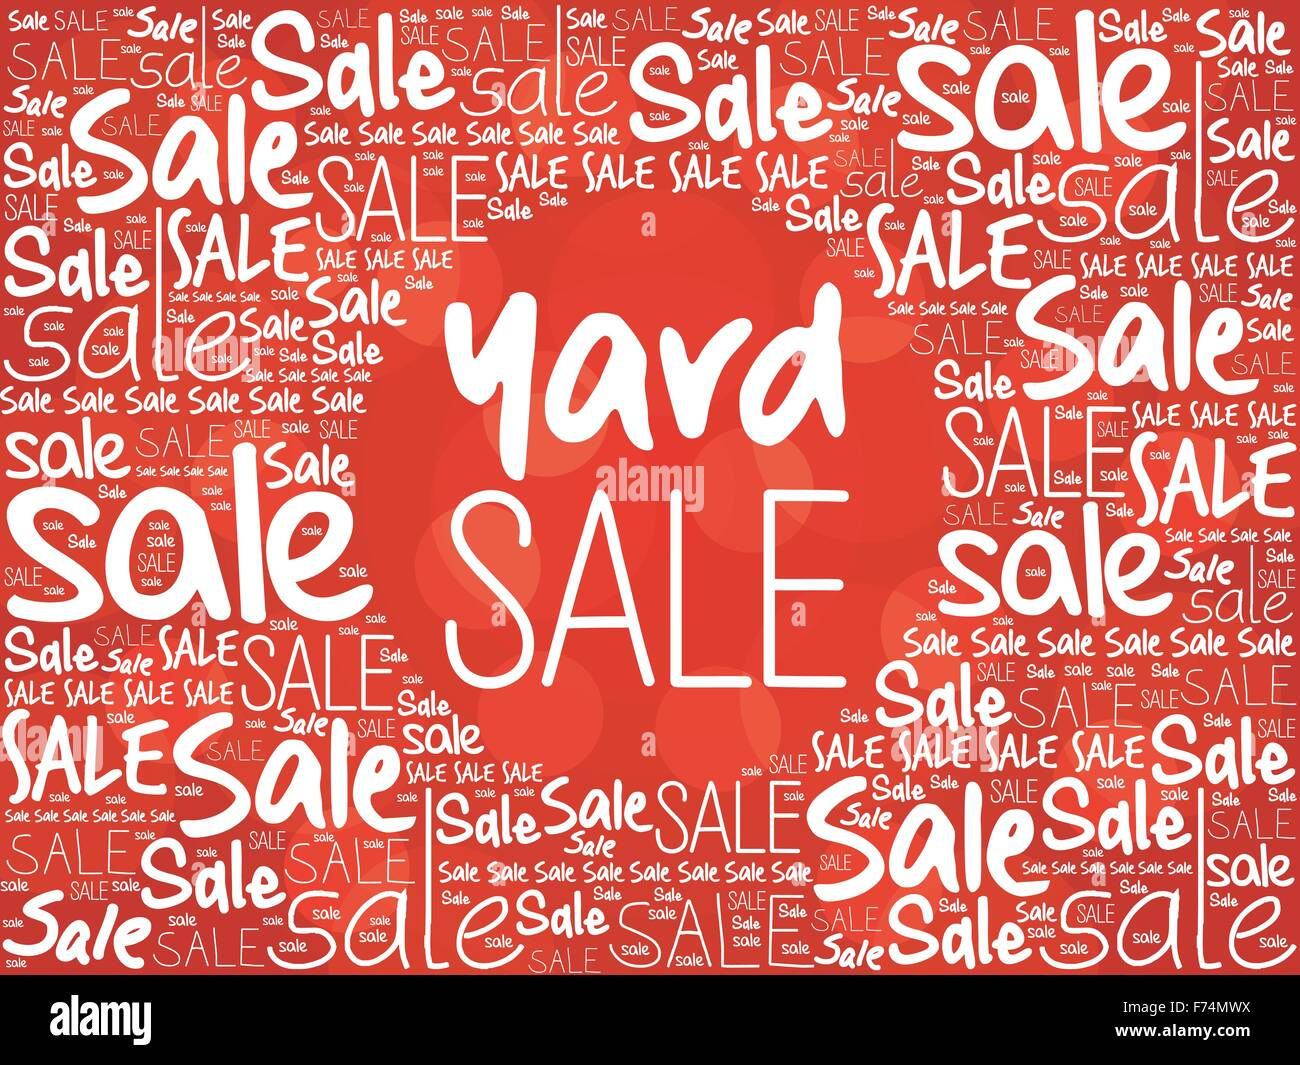 YARD SALE word cloud background, business concept - Stock Vector